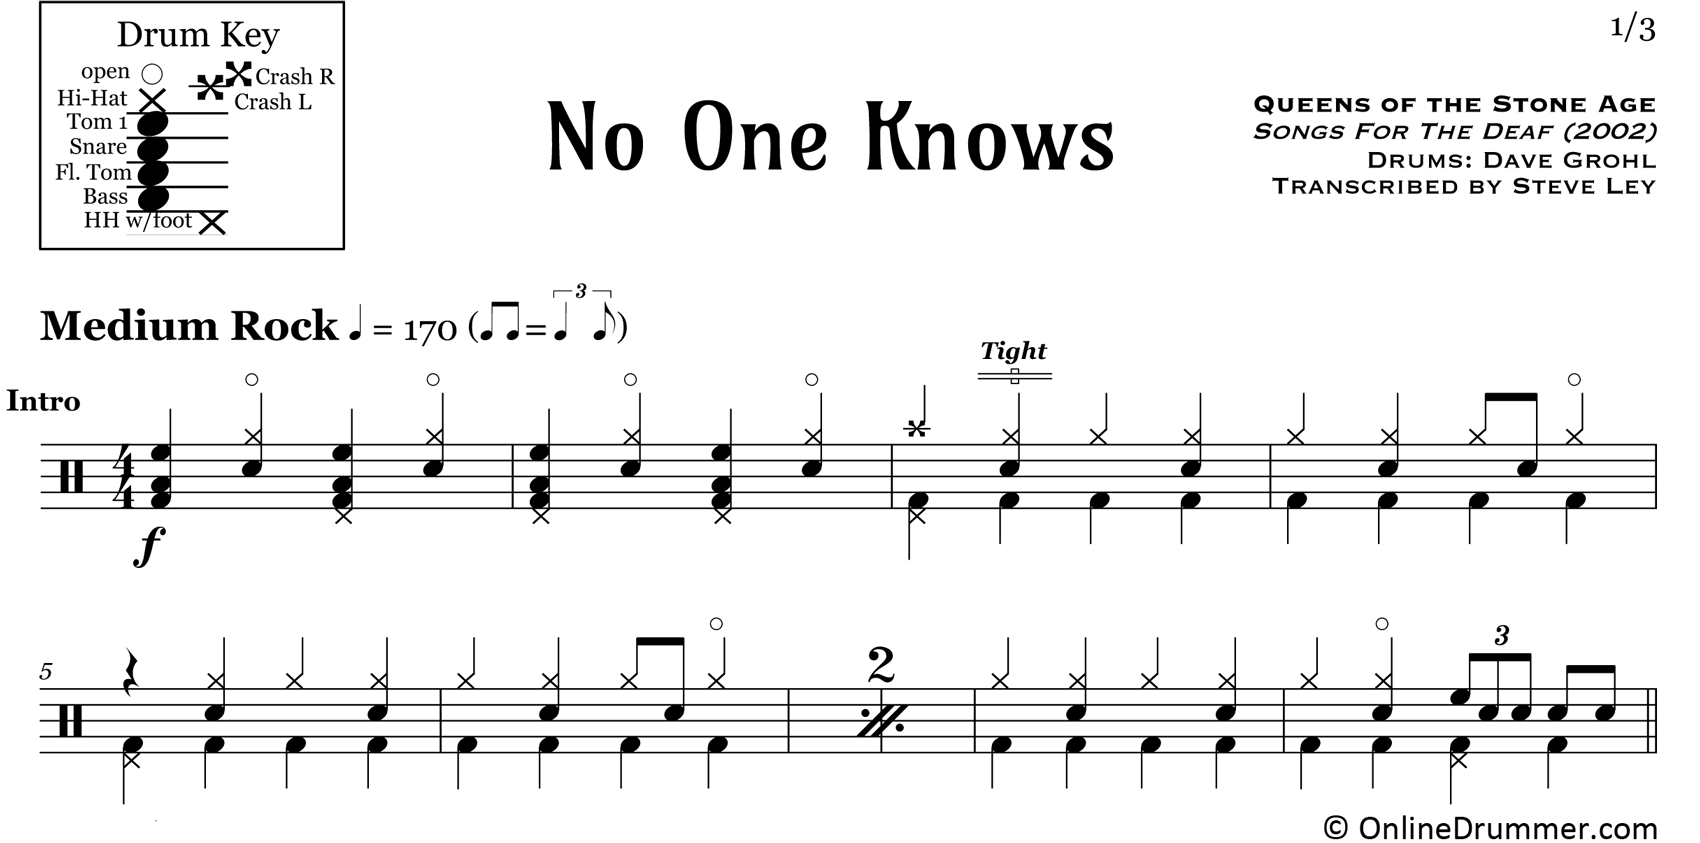 No One Knows - Queens of the Stone Age - Drum Sheet Music